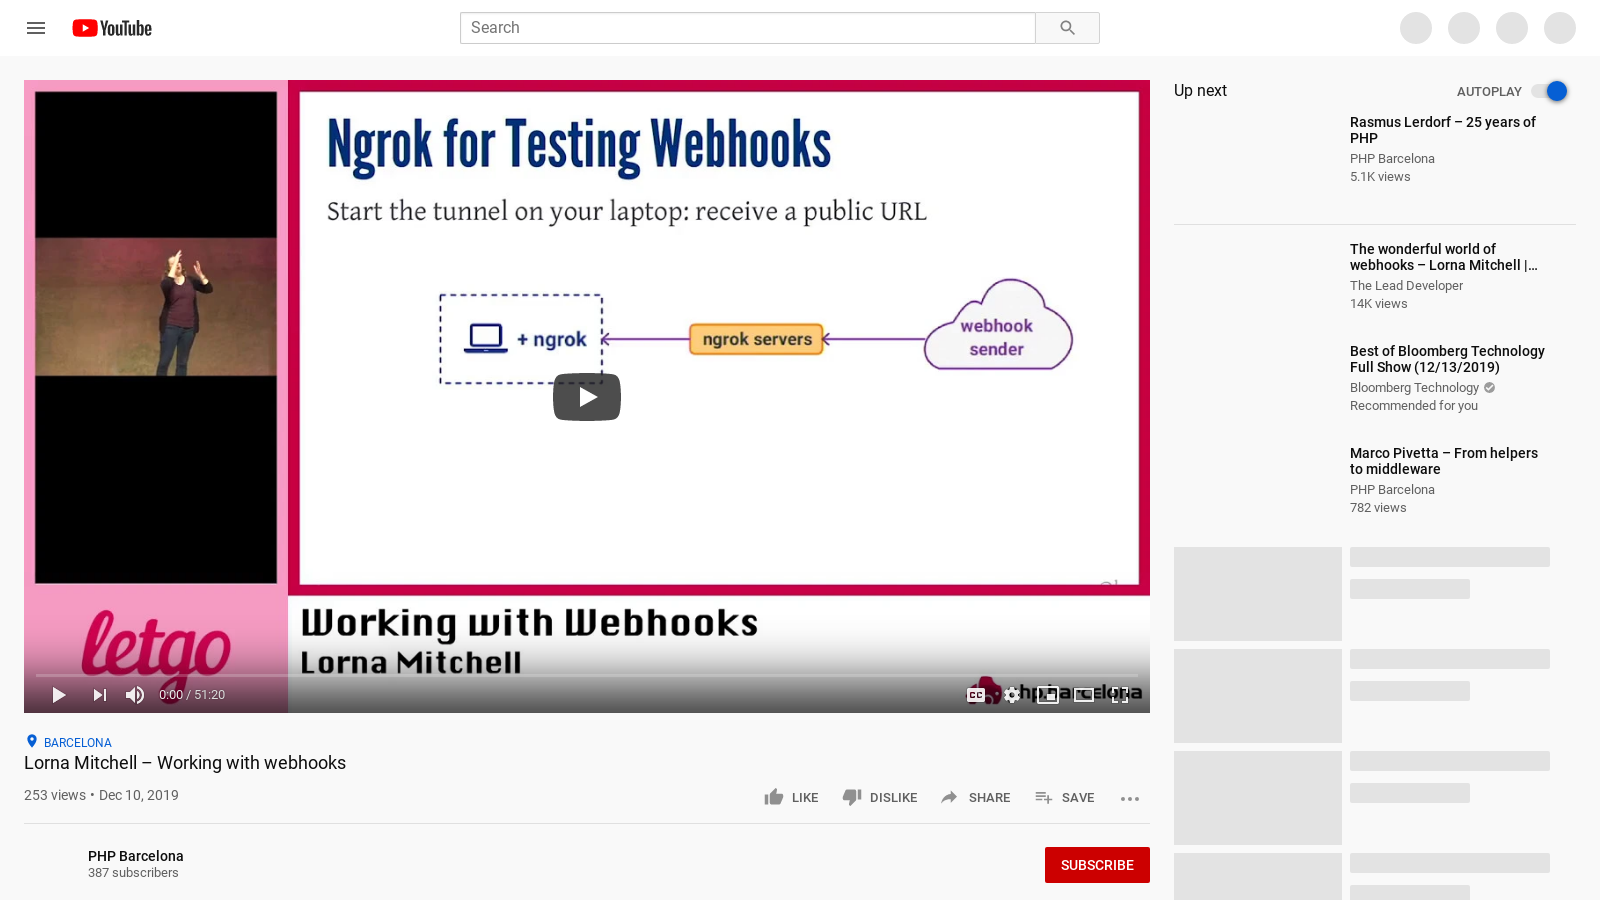 Working with Webhooks